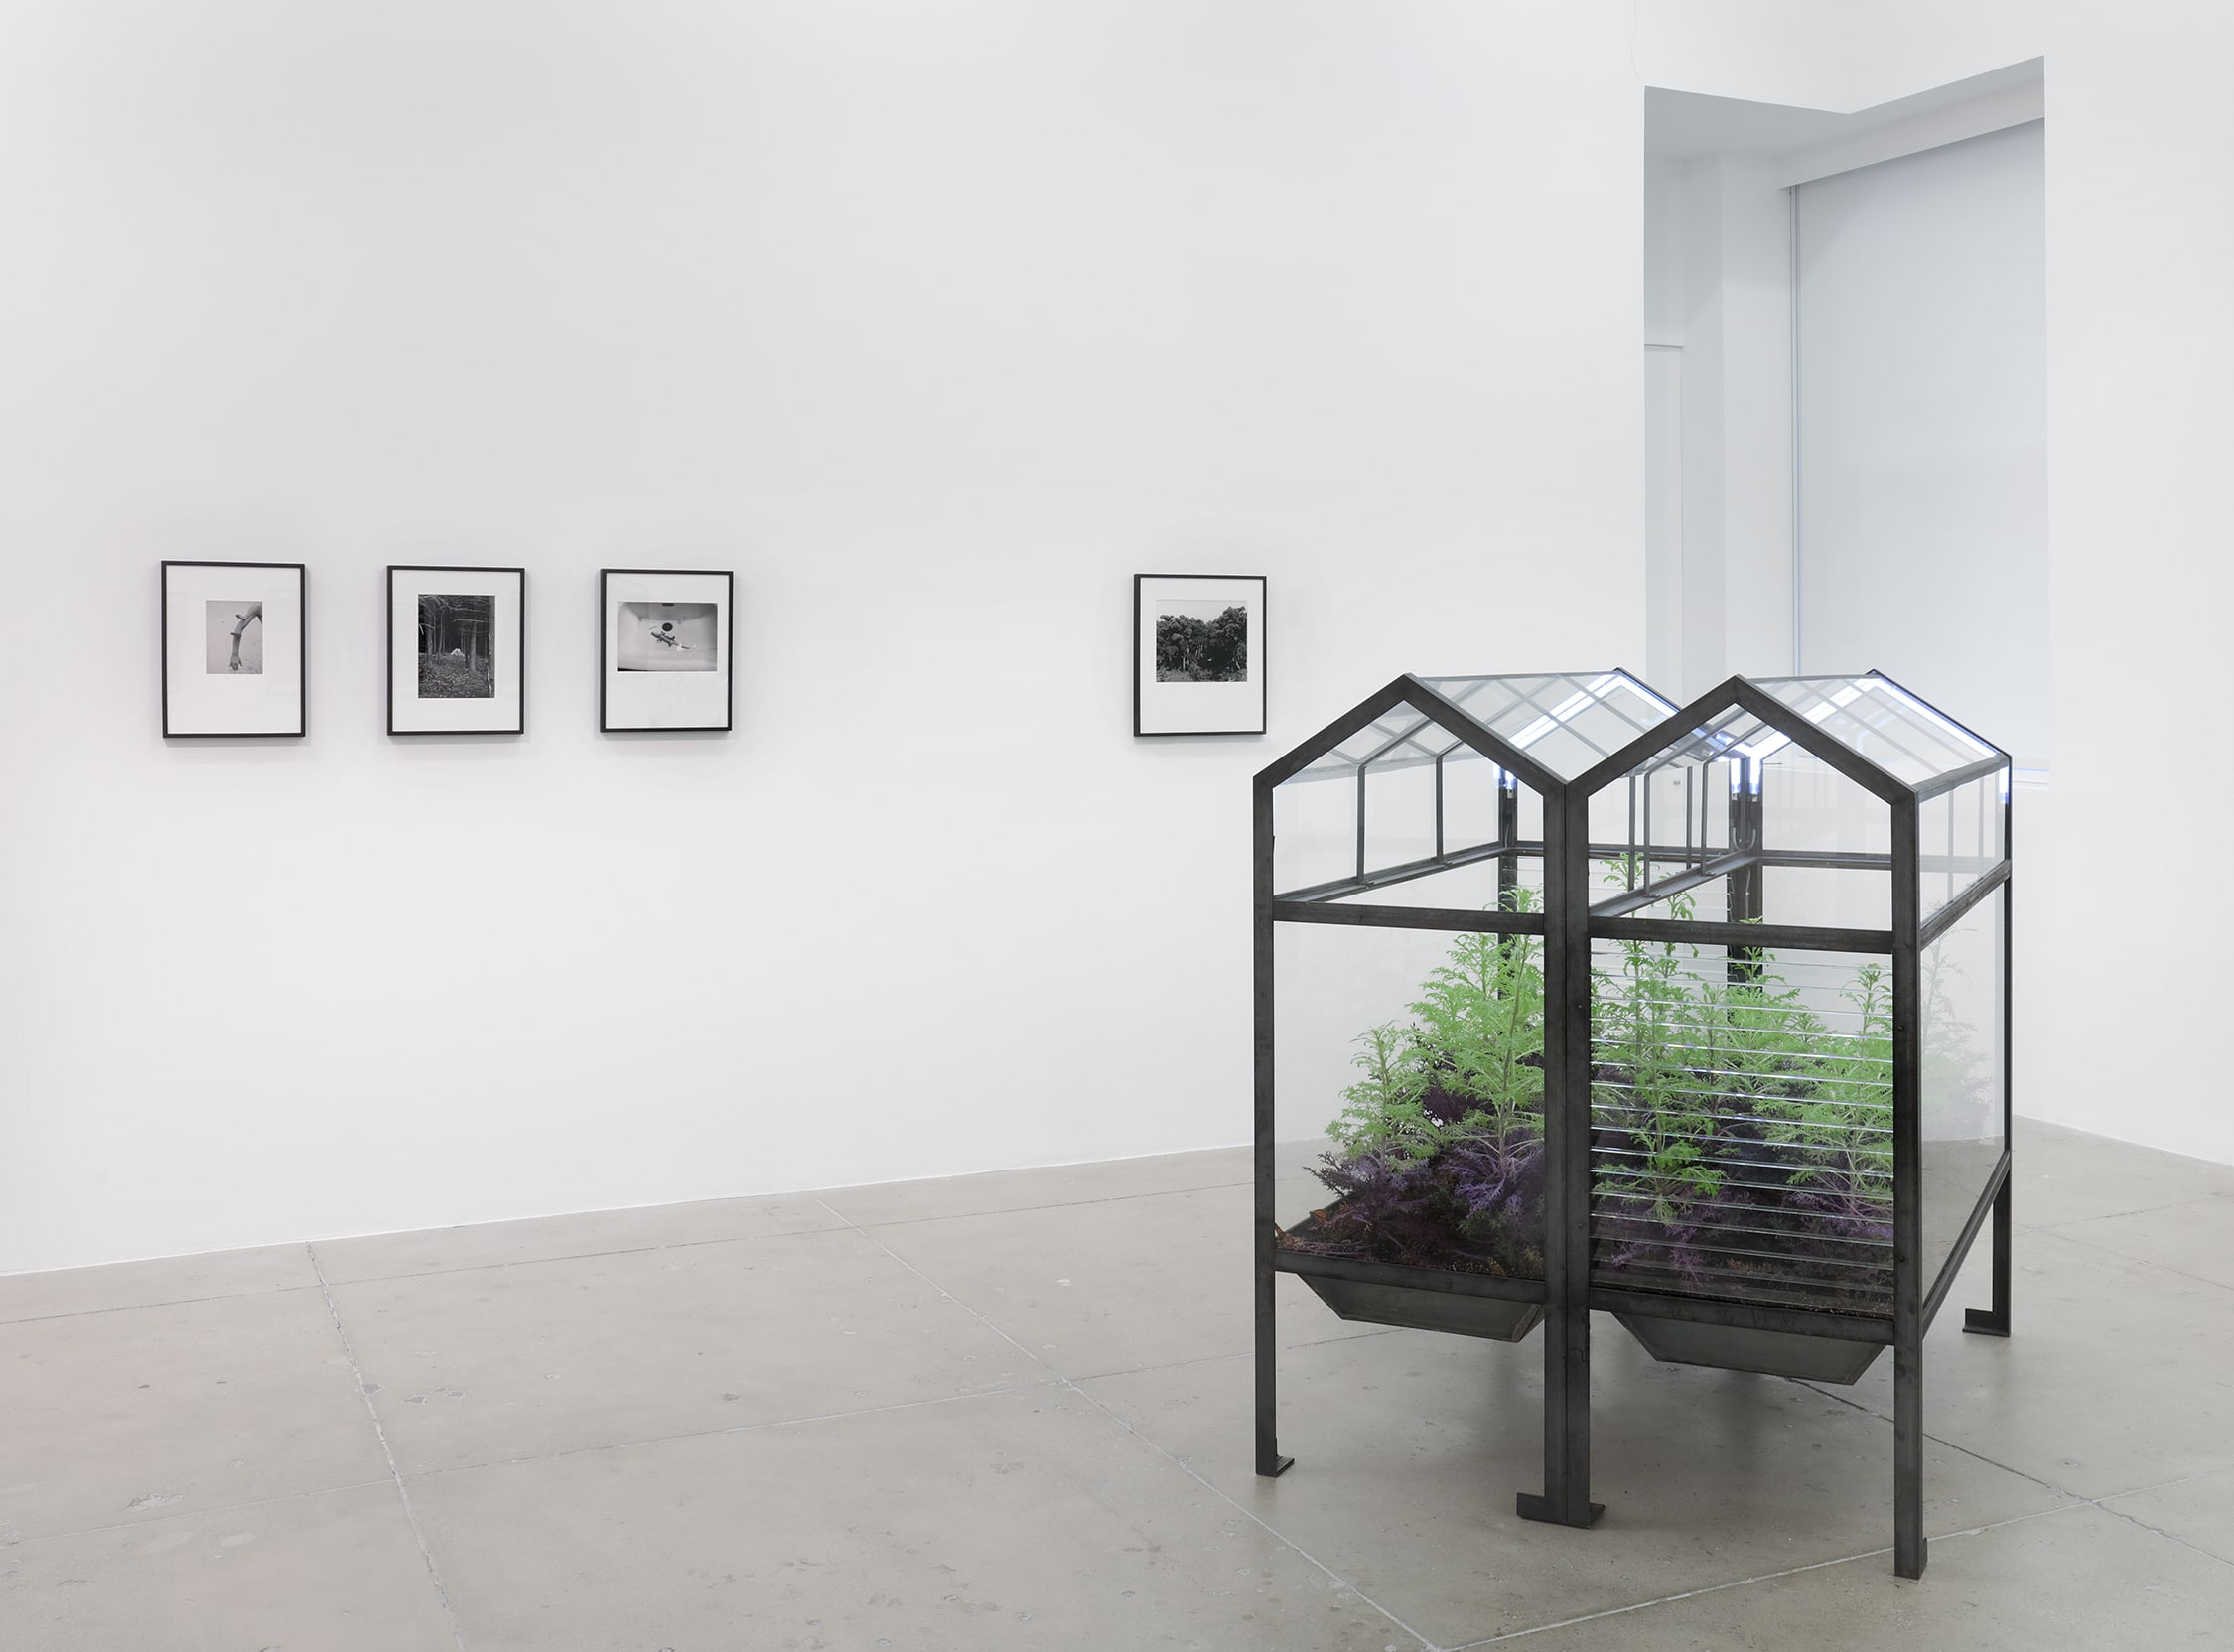 photographs by Lothar Baumgarten on the wall, with a glass habitat for butteflies